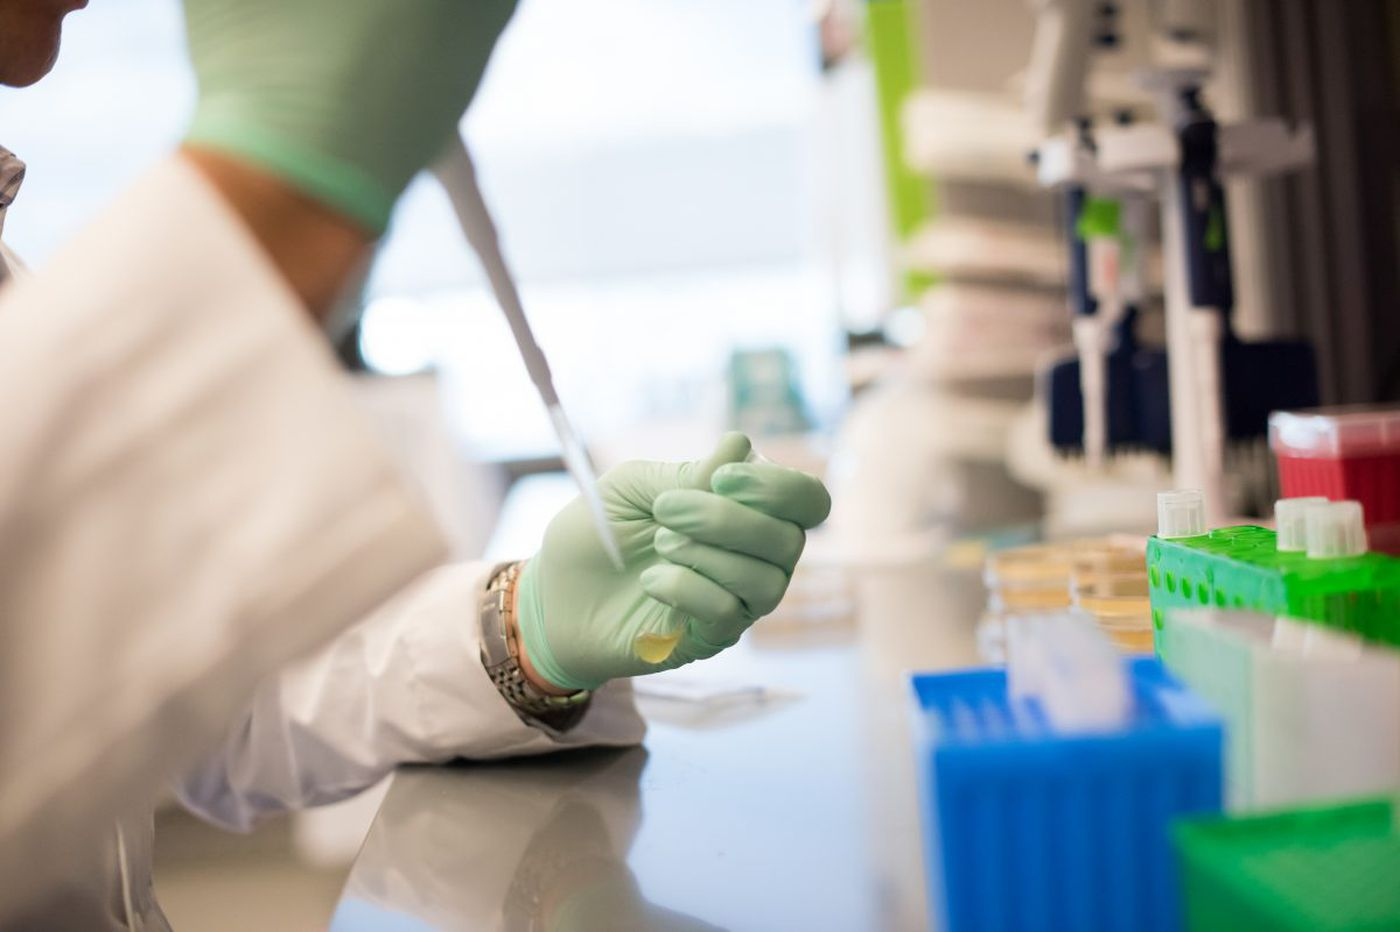 Spark Therapeutics signs $170M+ deal with Novartis for blindness gene therapy